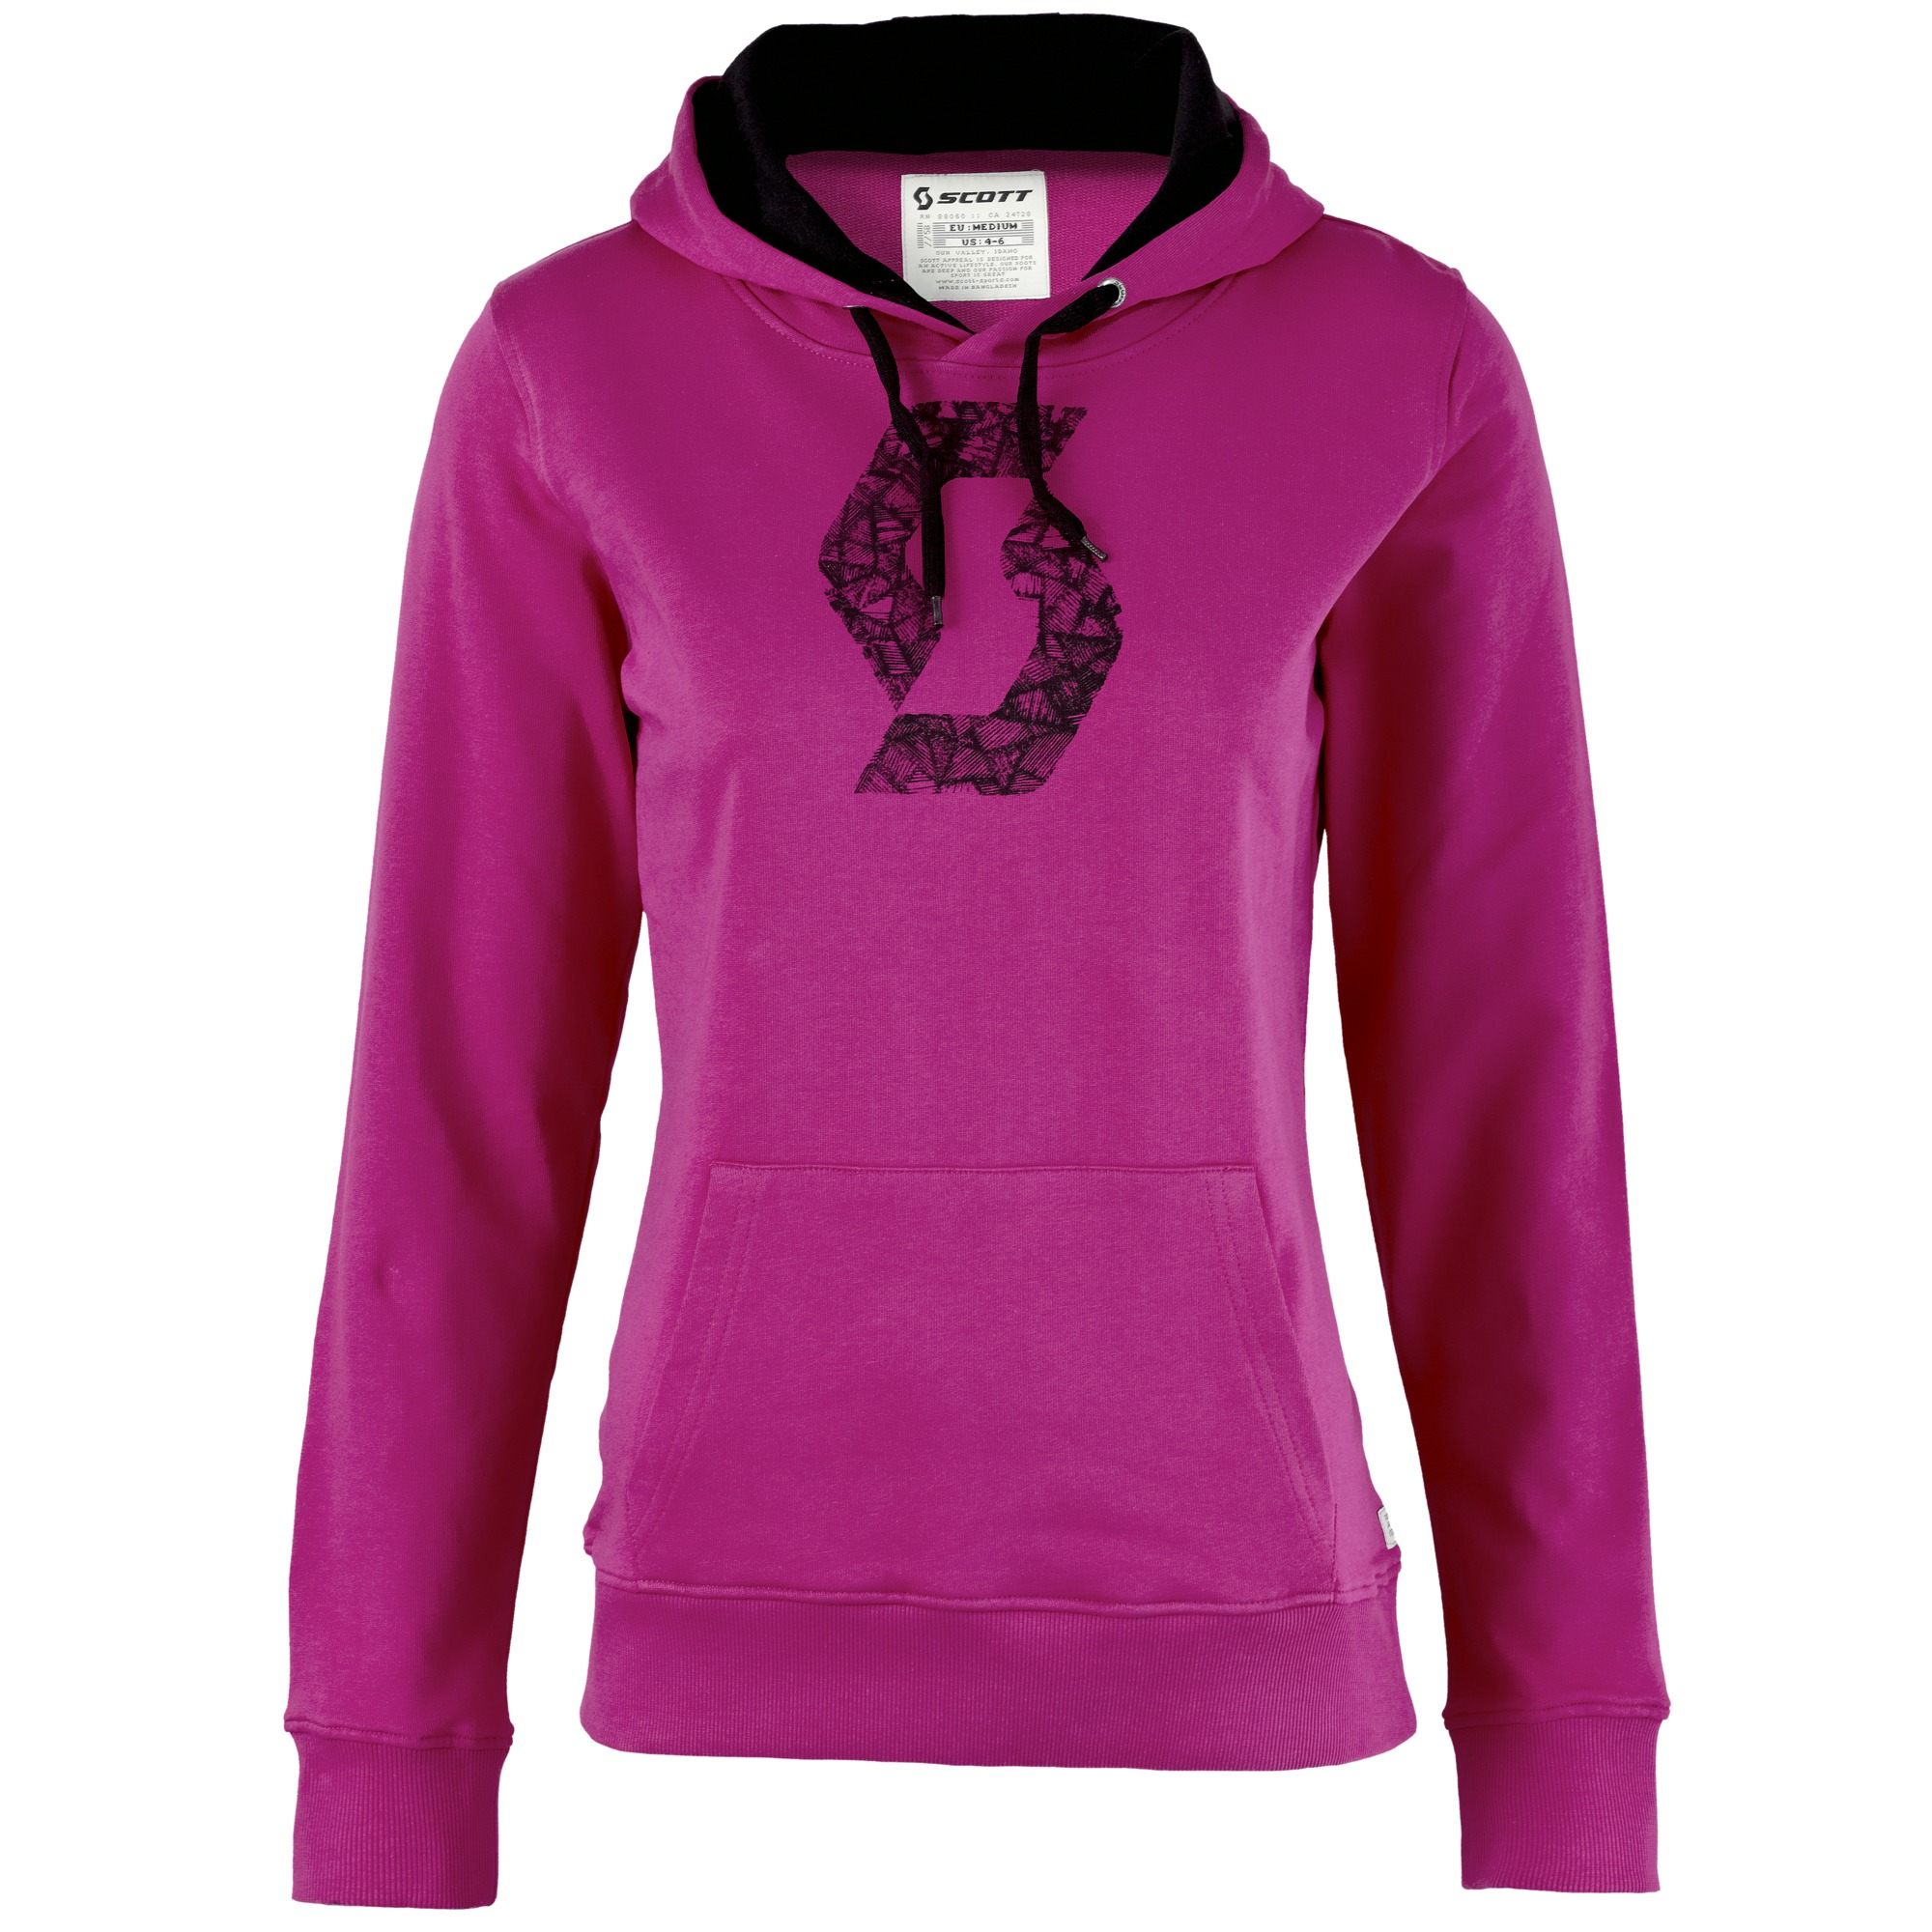 SCOTT 20 Icon l/sl Women's Hoody